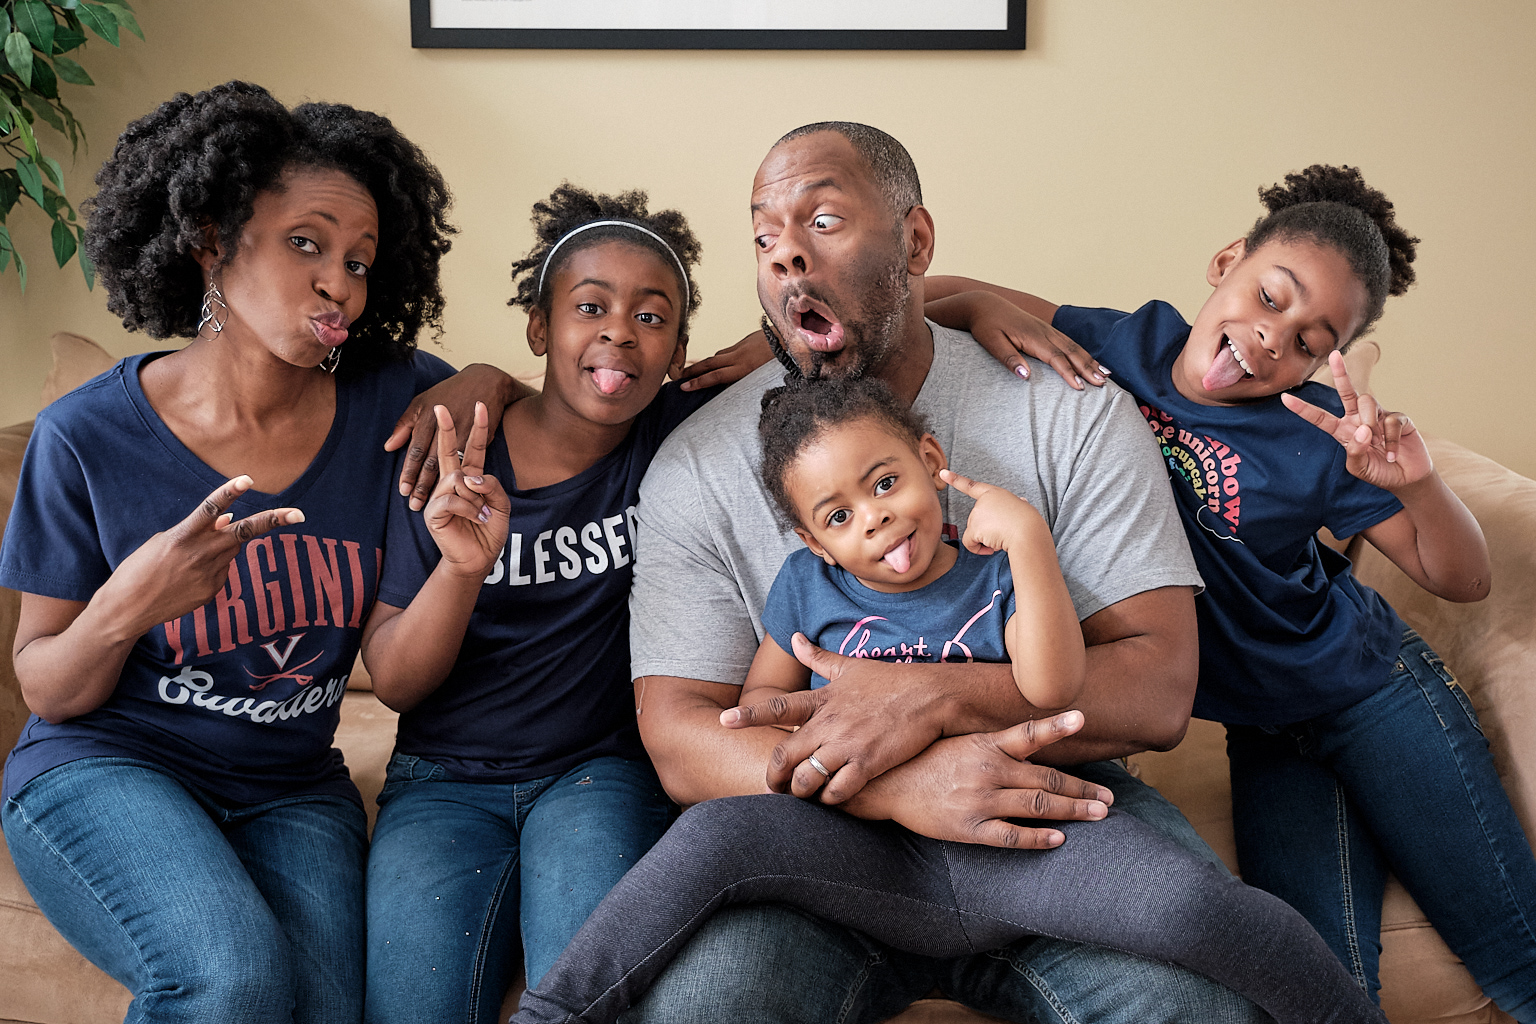 Lenzy_Ruffin_Photograph_Family_Lifestye_2019-04-20-112.jpg